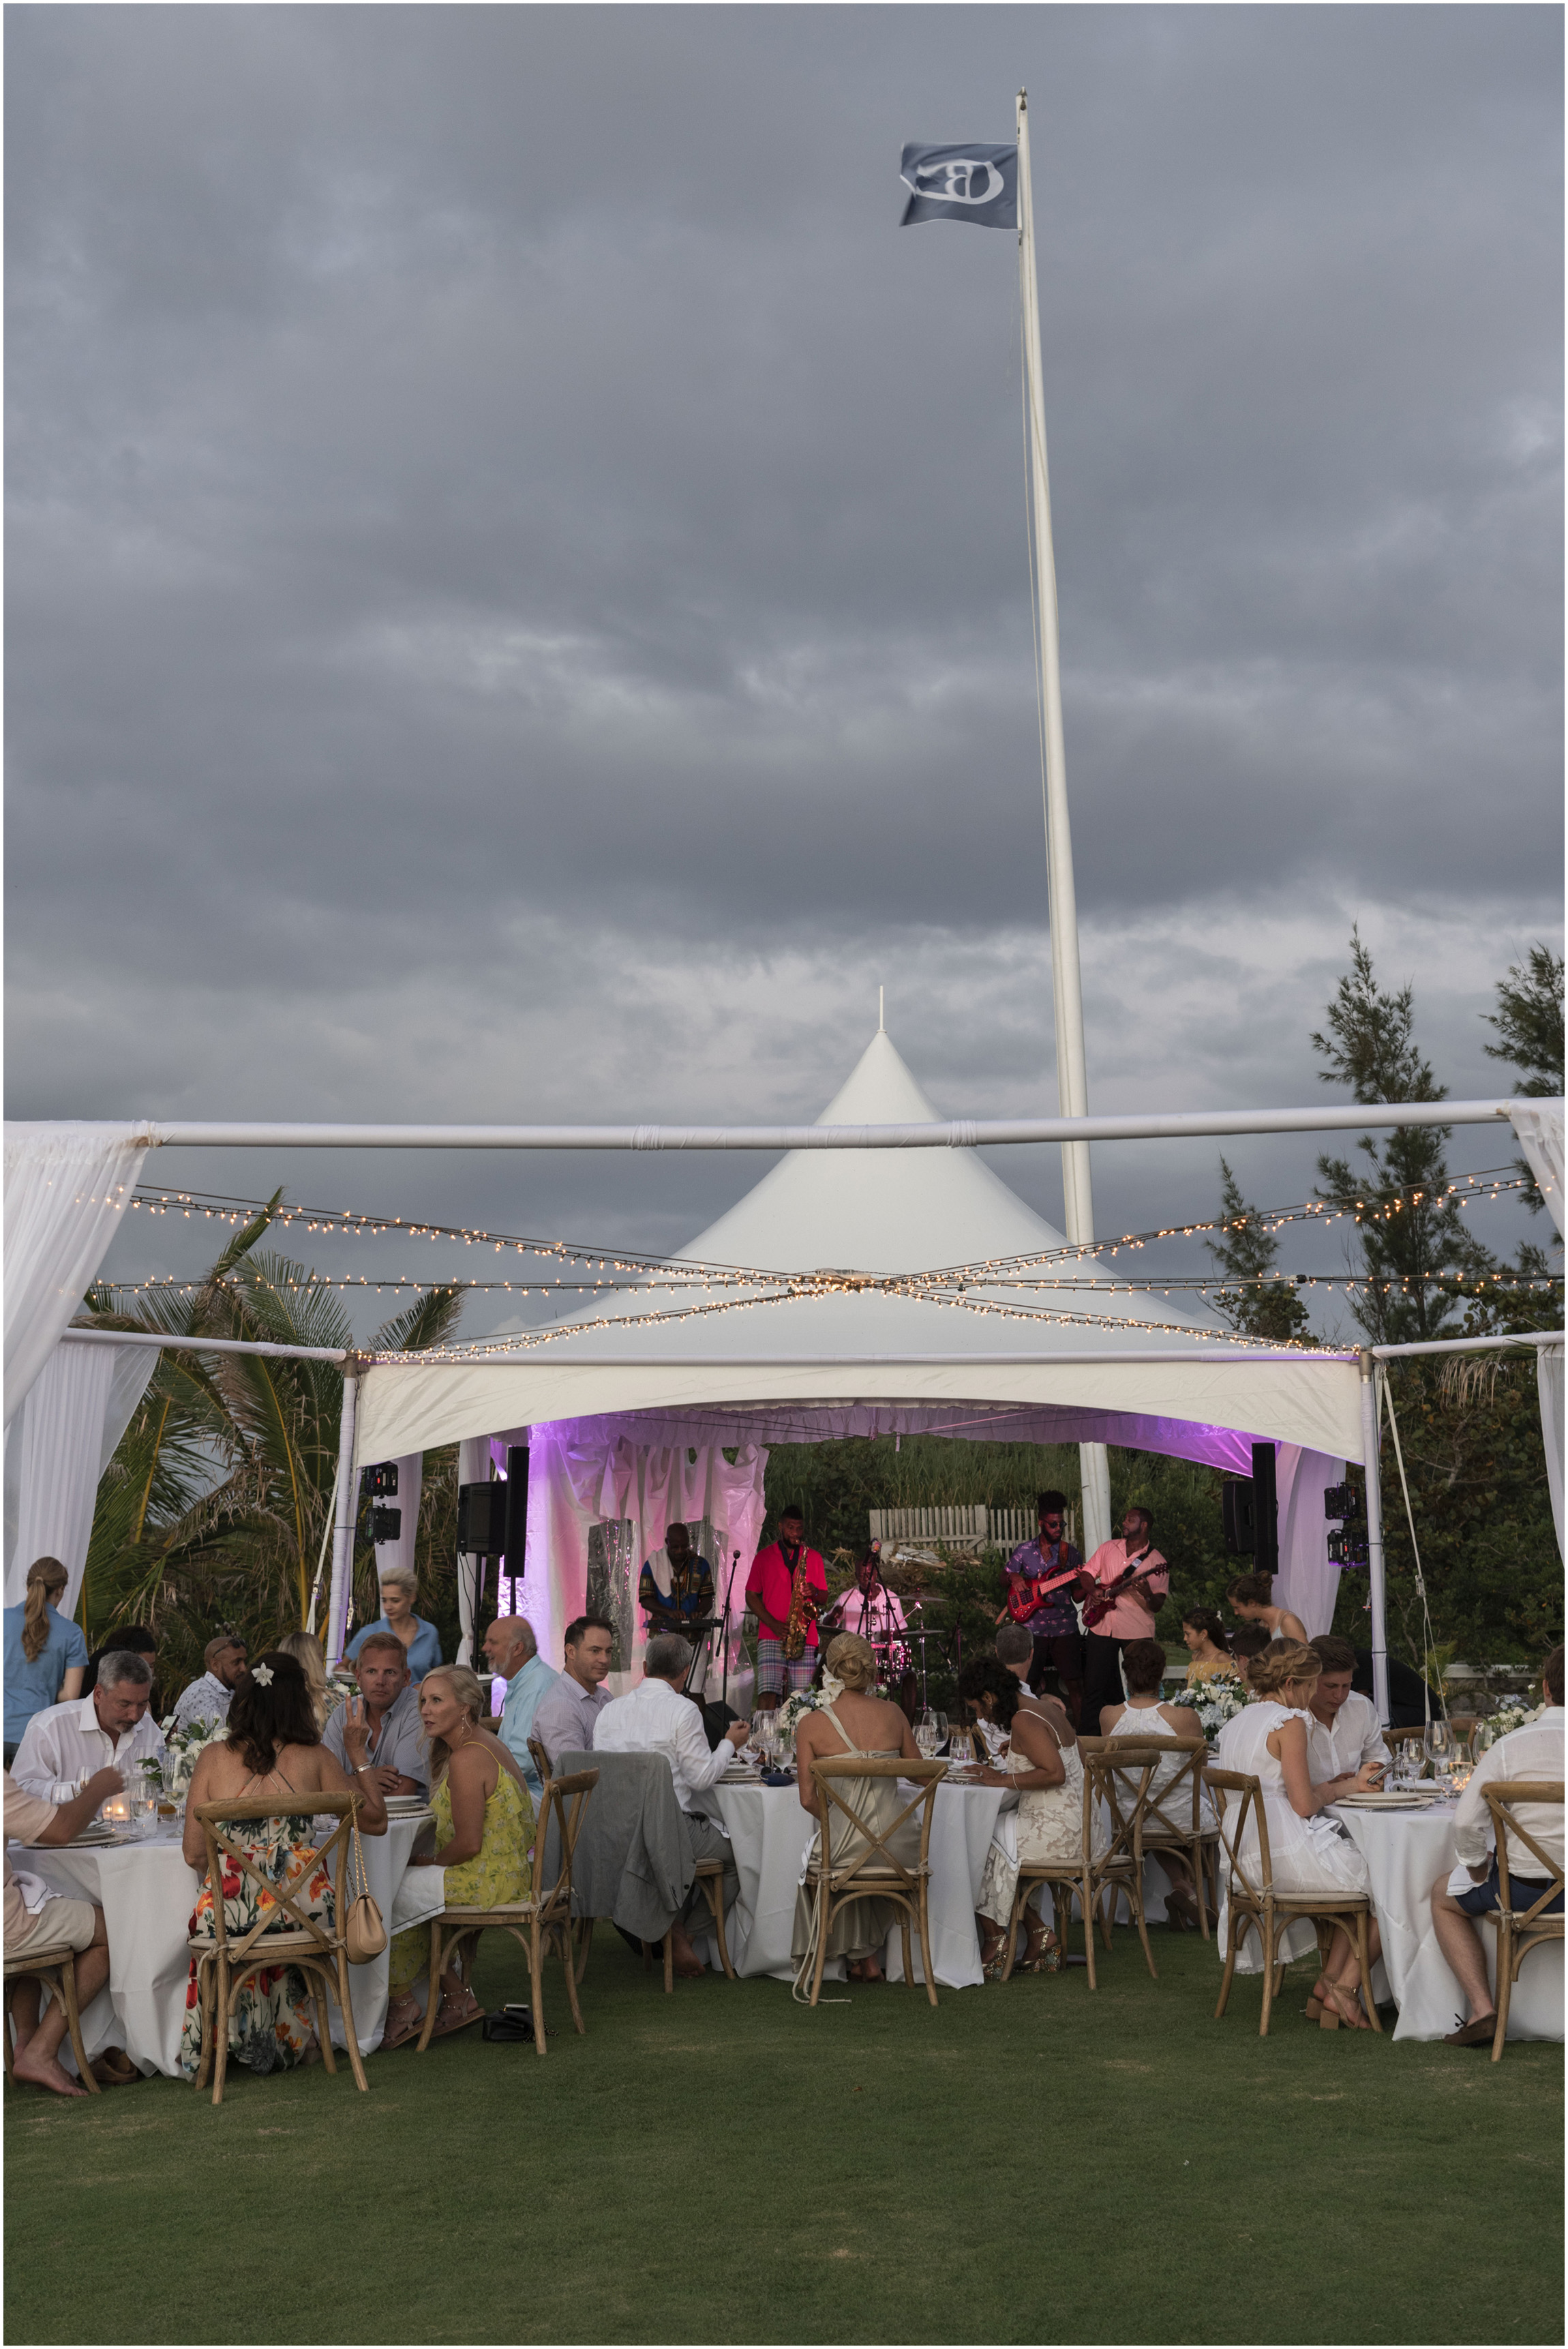 ©FianderFoto_Bermuda_Wedding_Photographer_Long_Island_Bermuda_Nancy_Ray_109.jpg